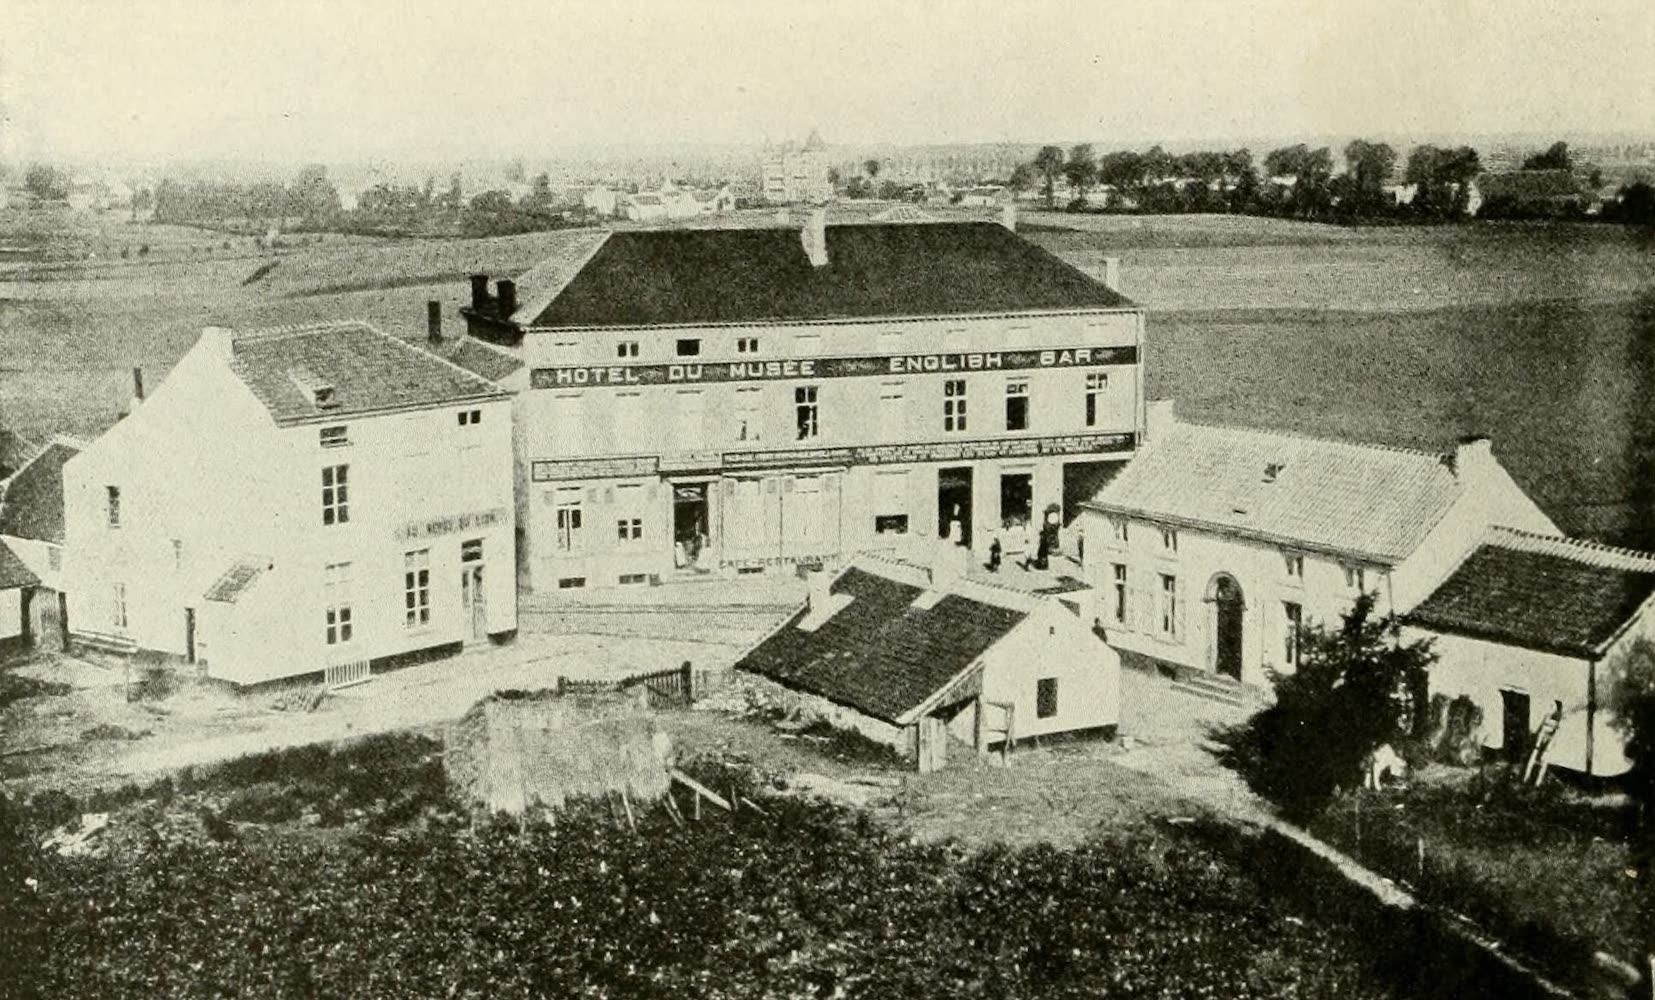 Laird & Lee's World's War Glimpses - On the Battlefield at Waterloo - The Hotel Du Musee on This Historic Battlefield (1914)